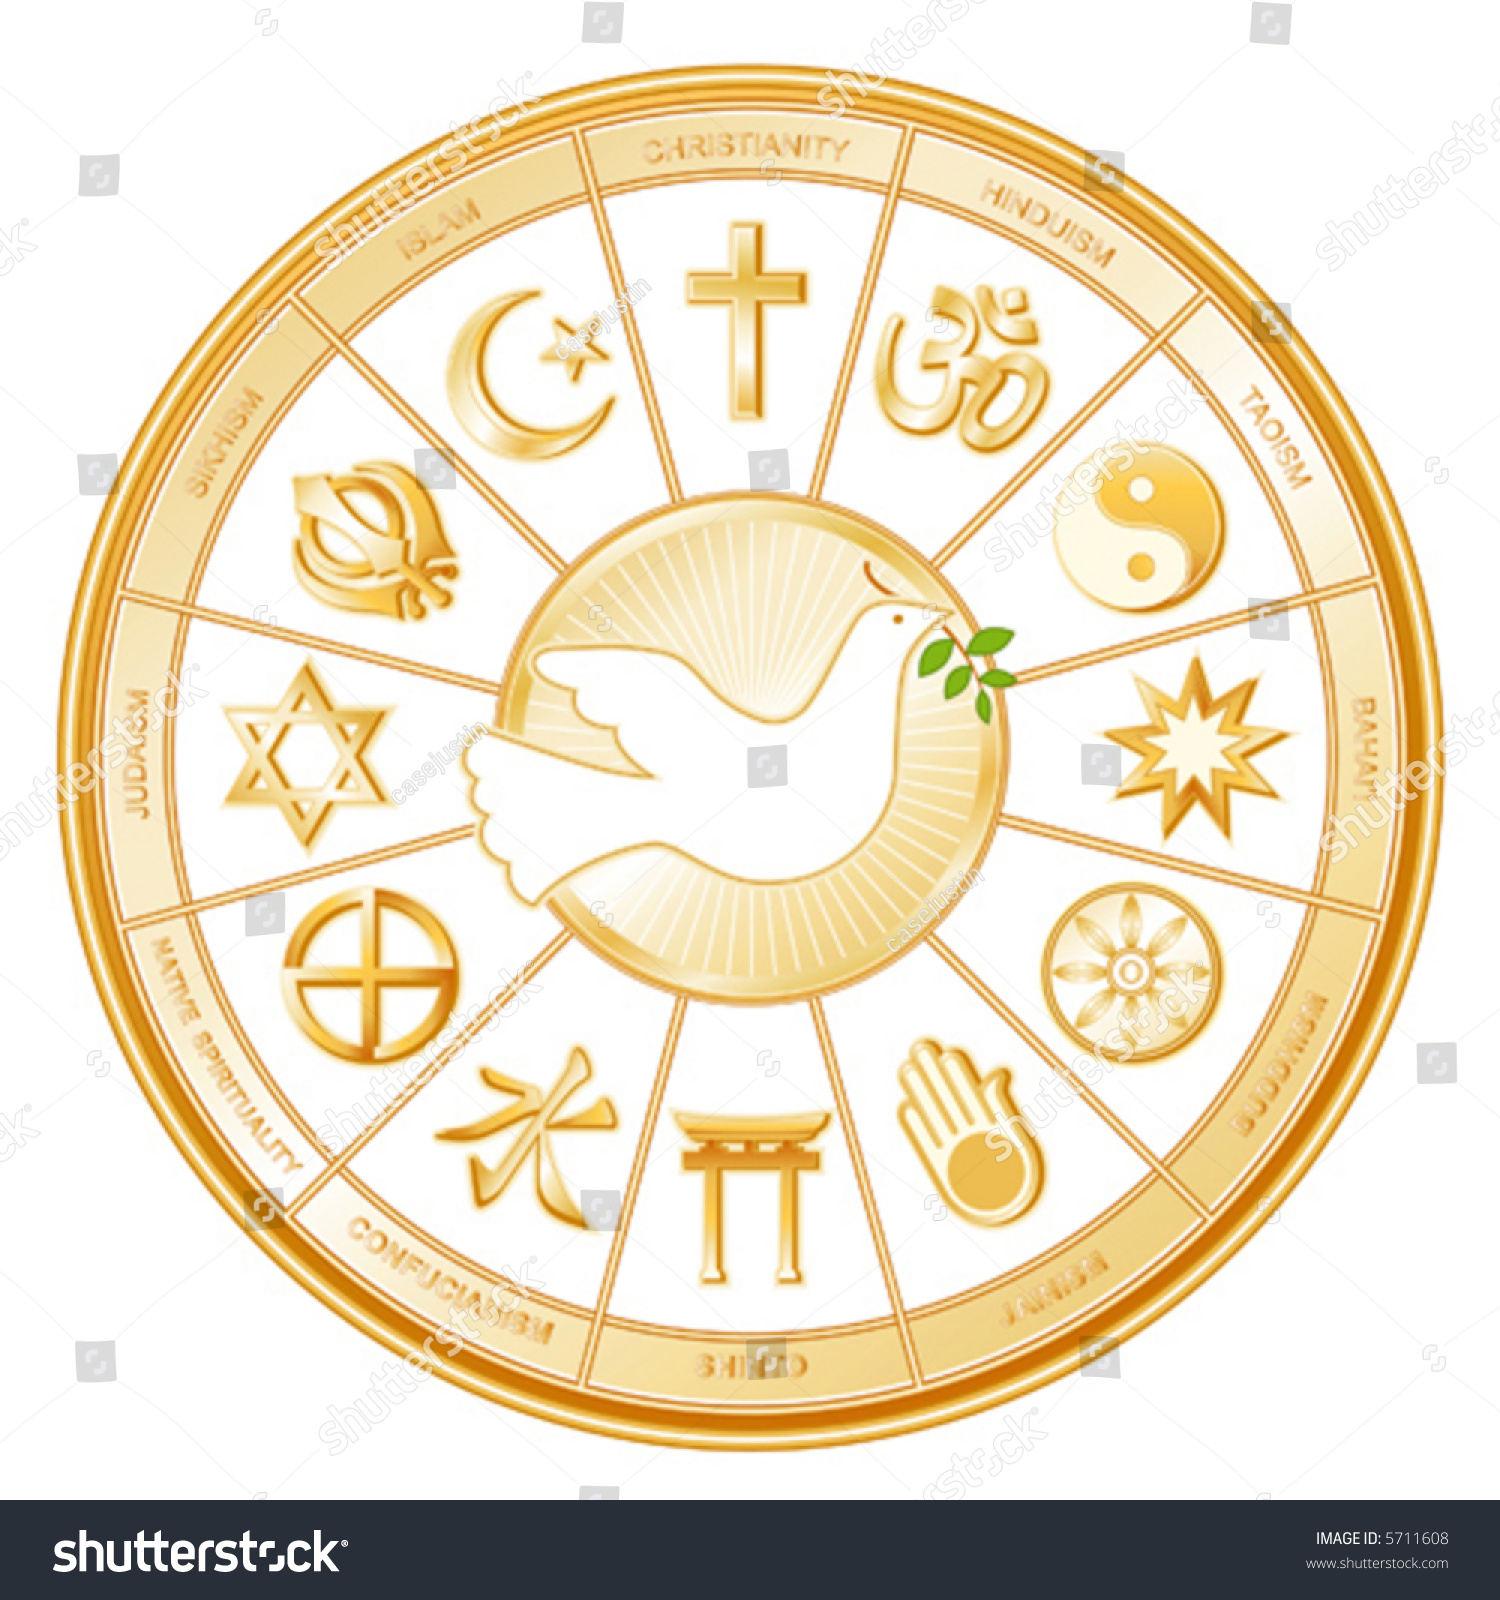 Differences/Similarities between Taoism and Christianity?